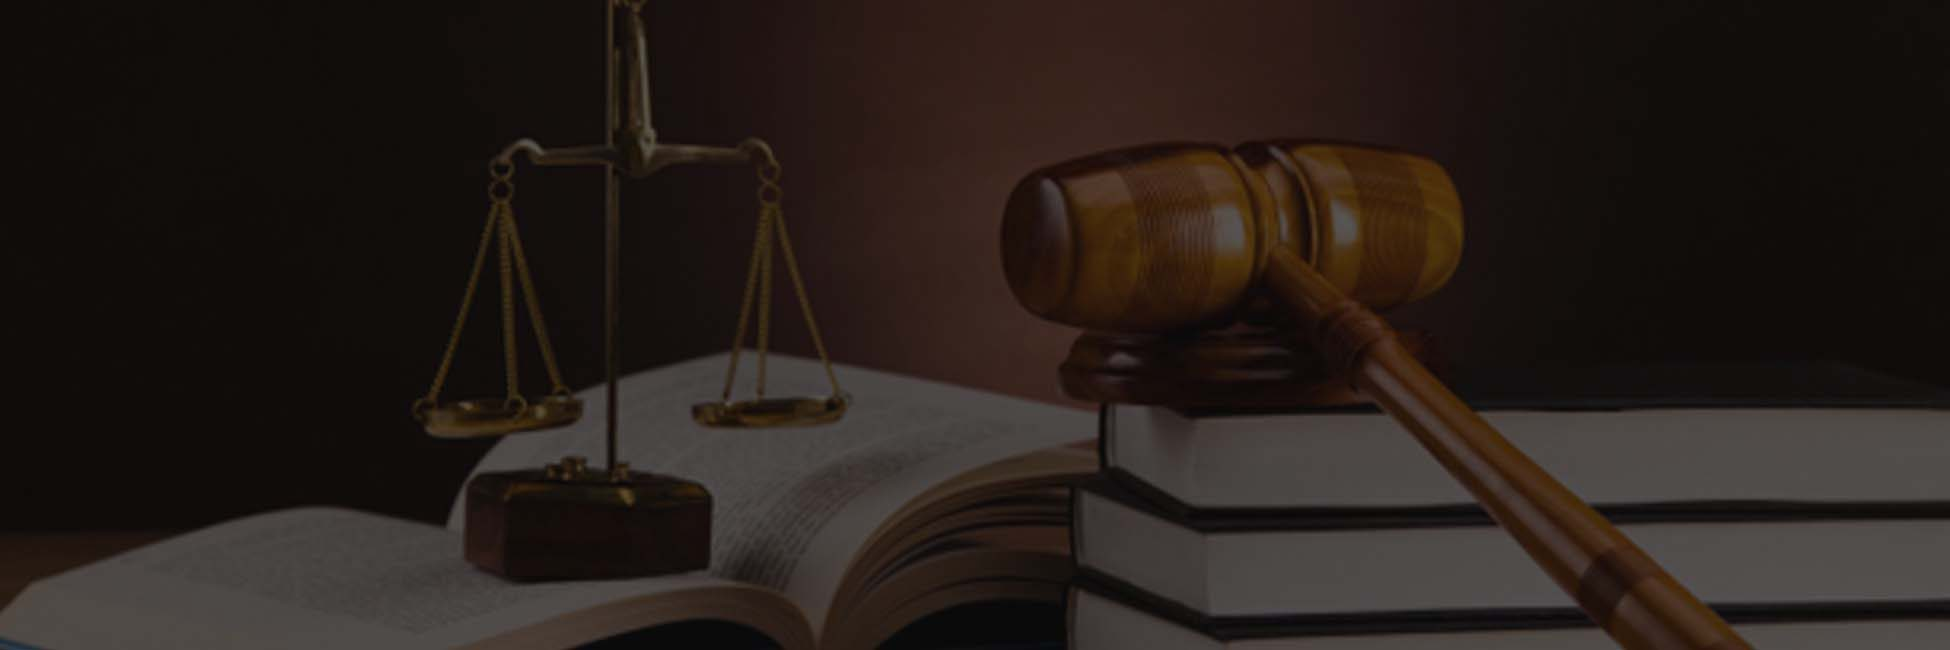 civil lawyer hyderabad